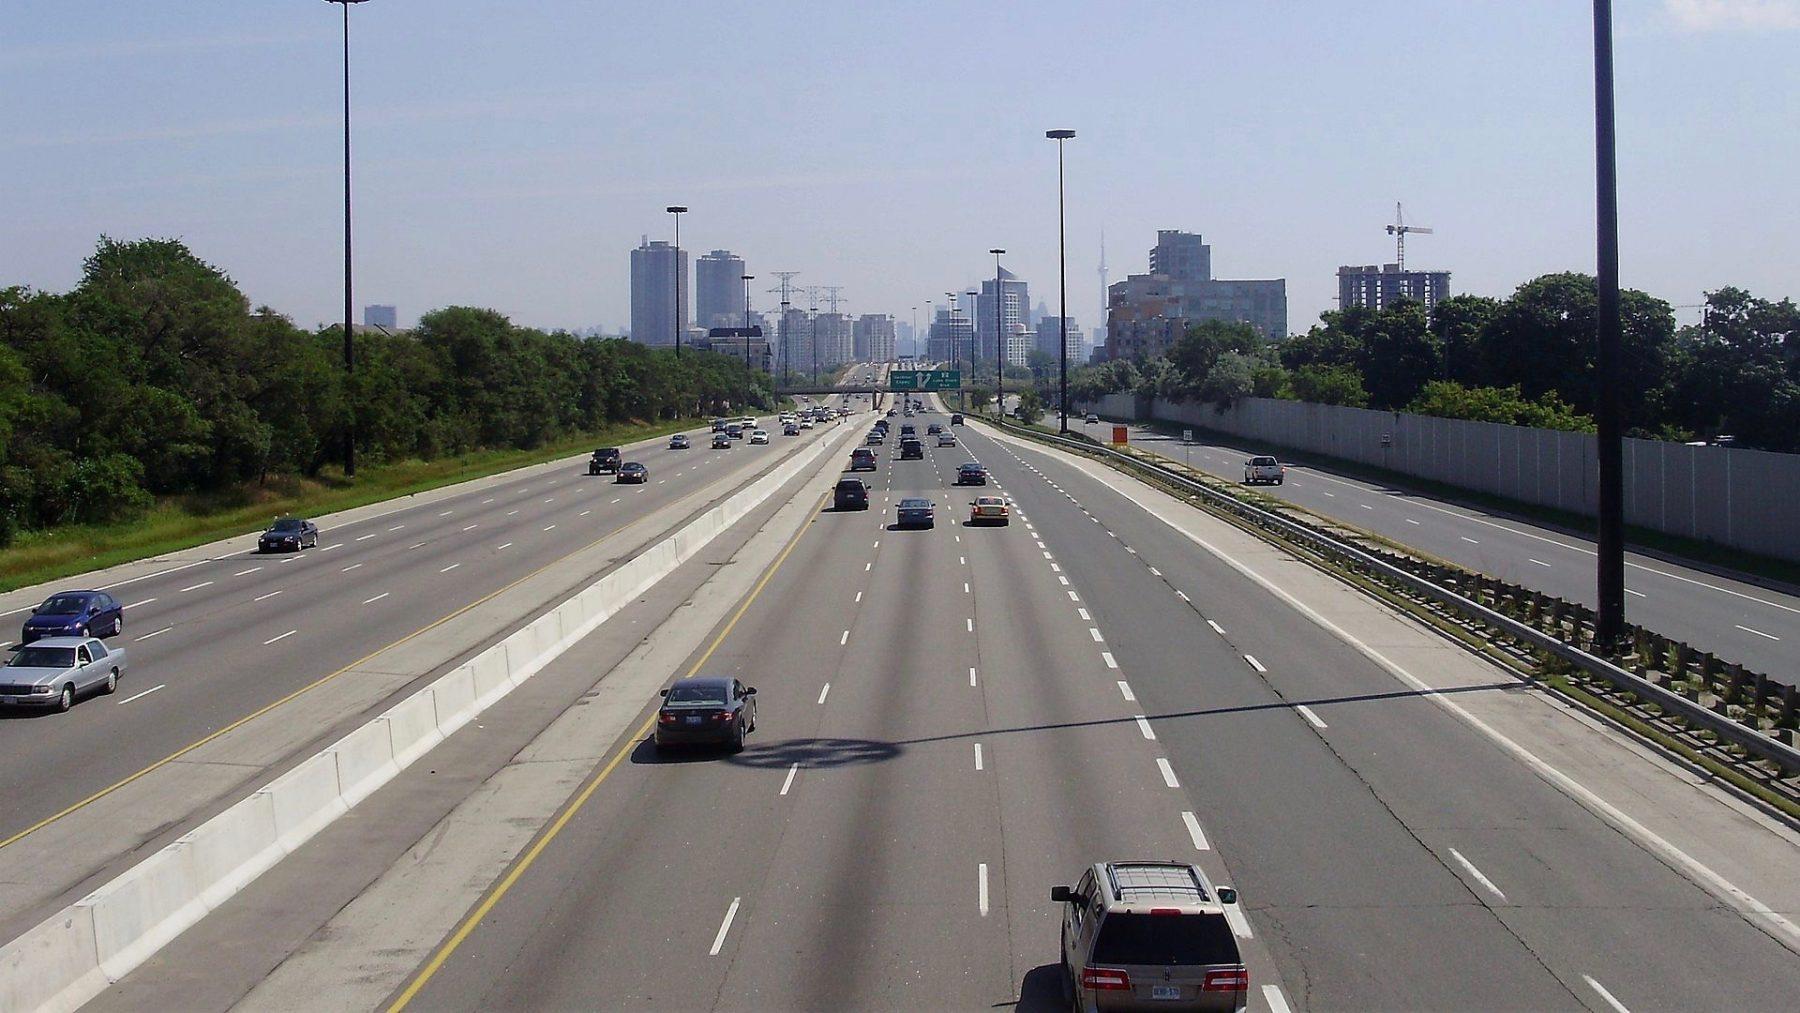 The QEW is offically getting toll lanes this September